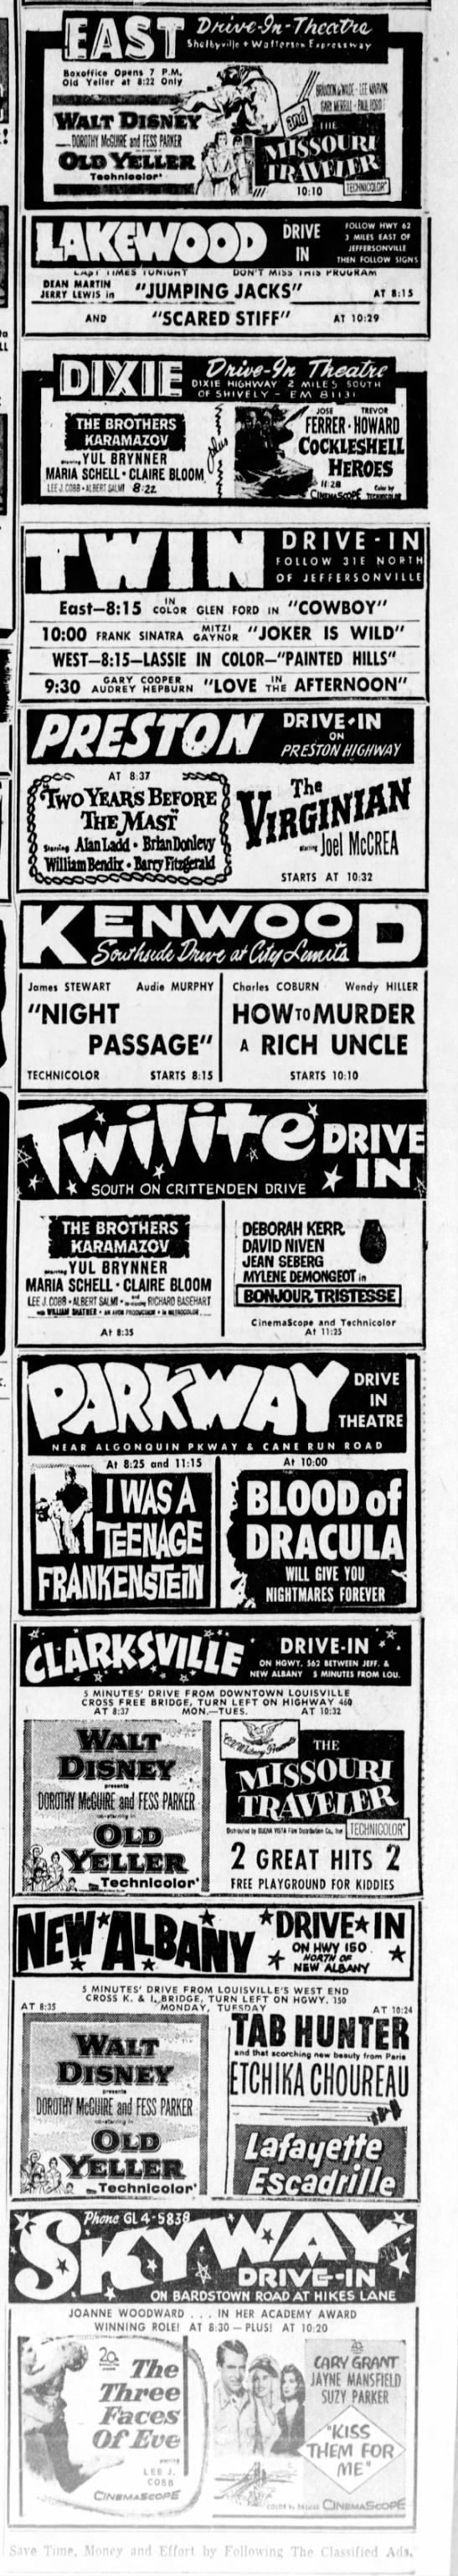 Drive In Movie ads in The Courier Journal